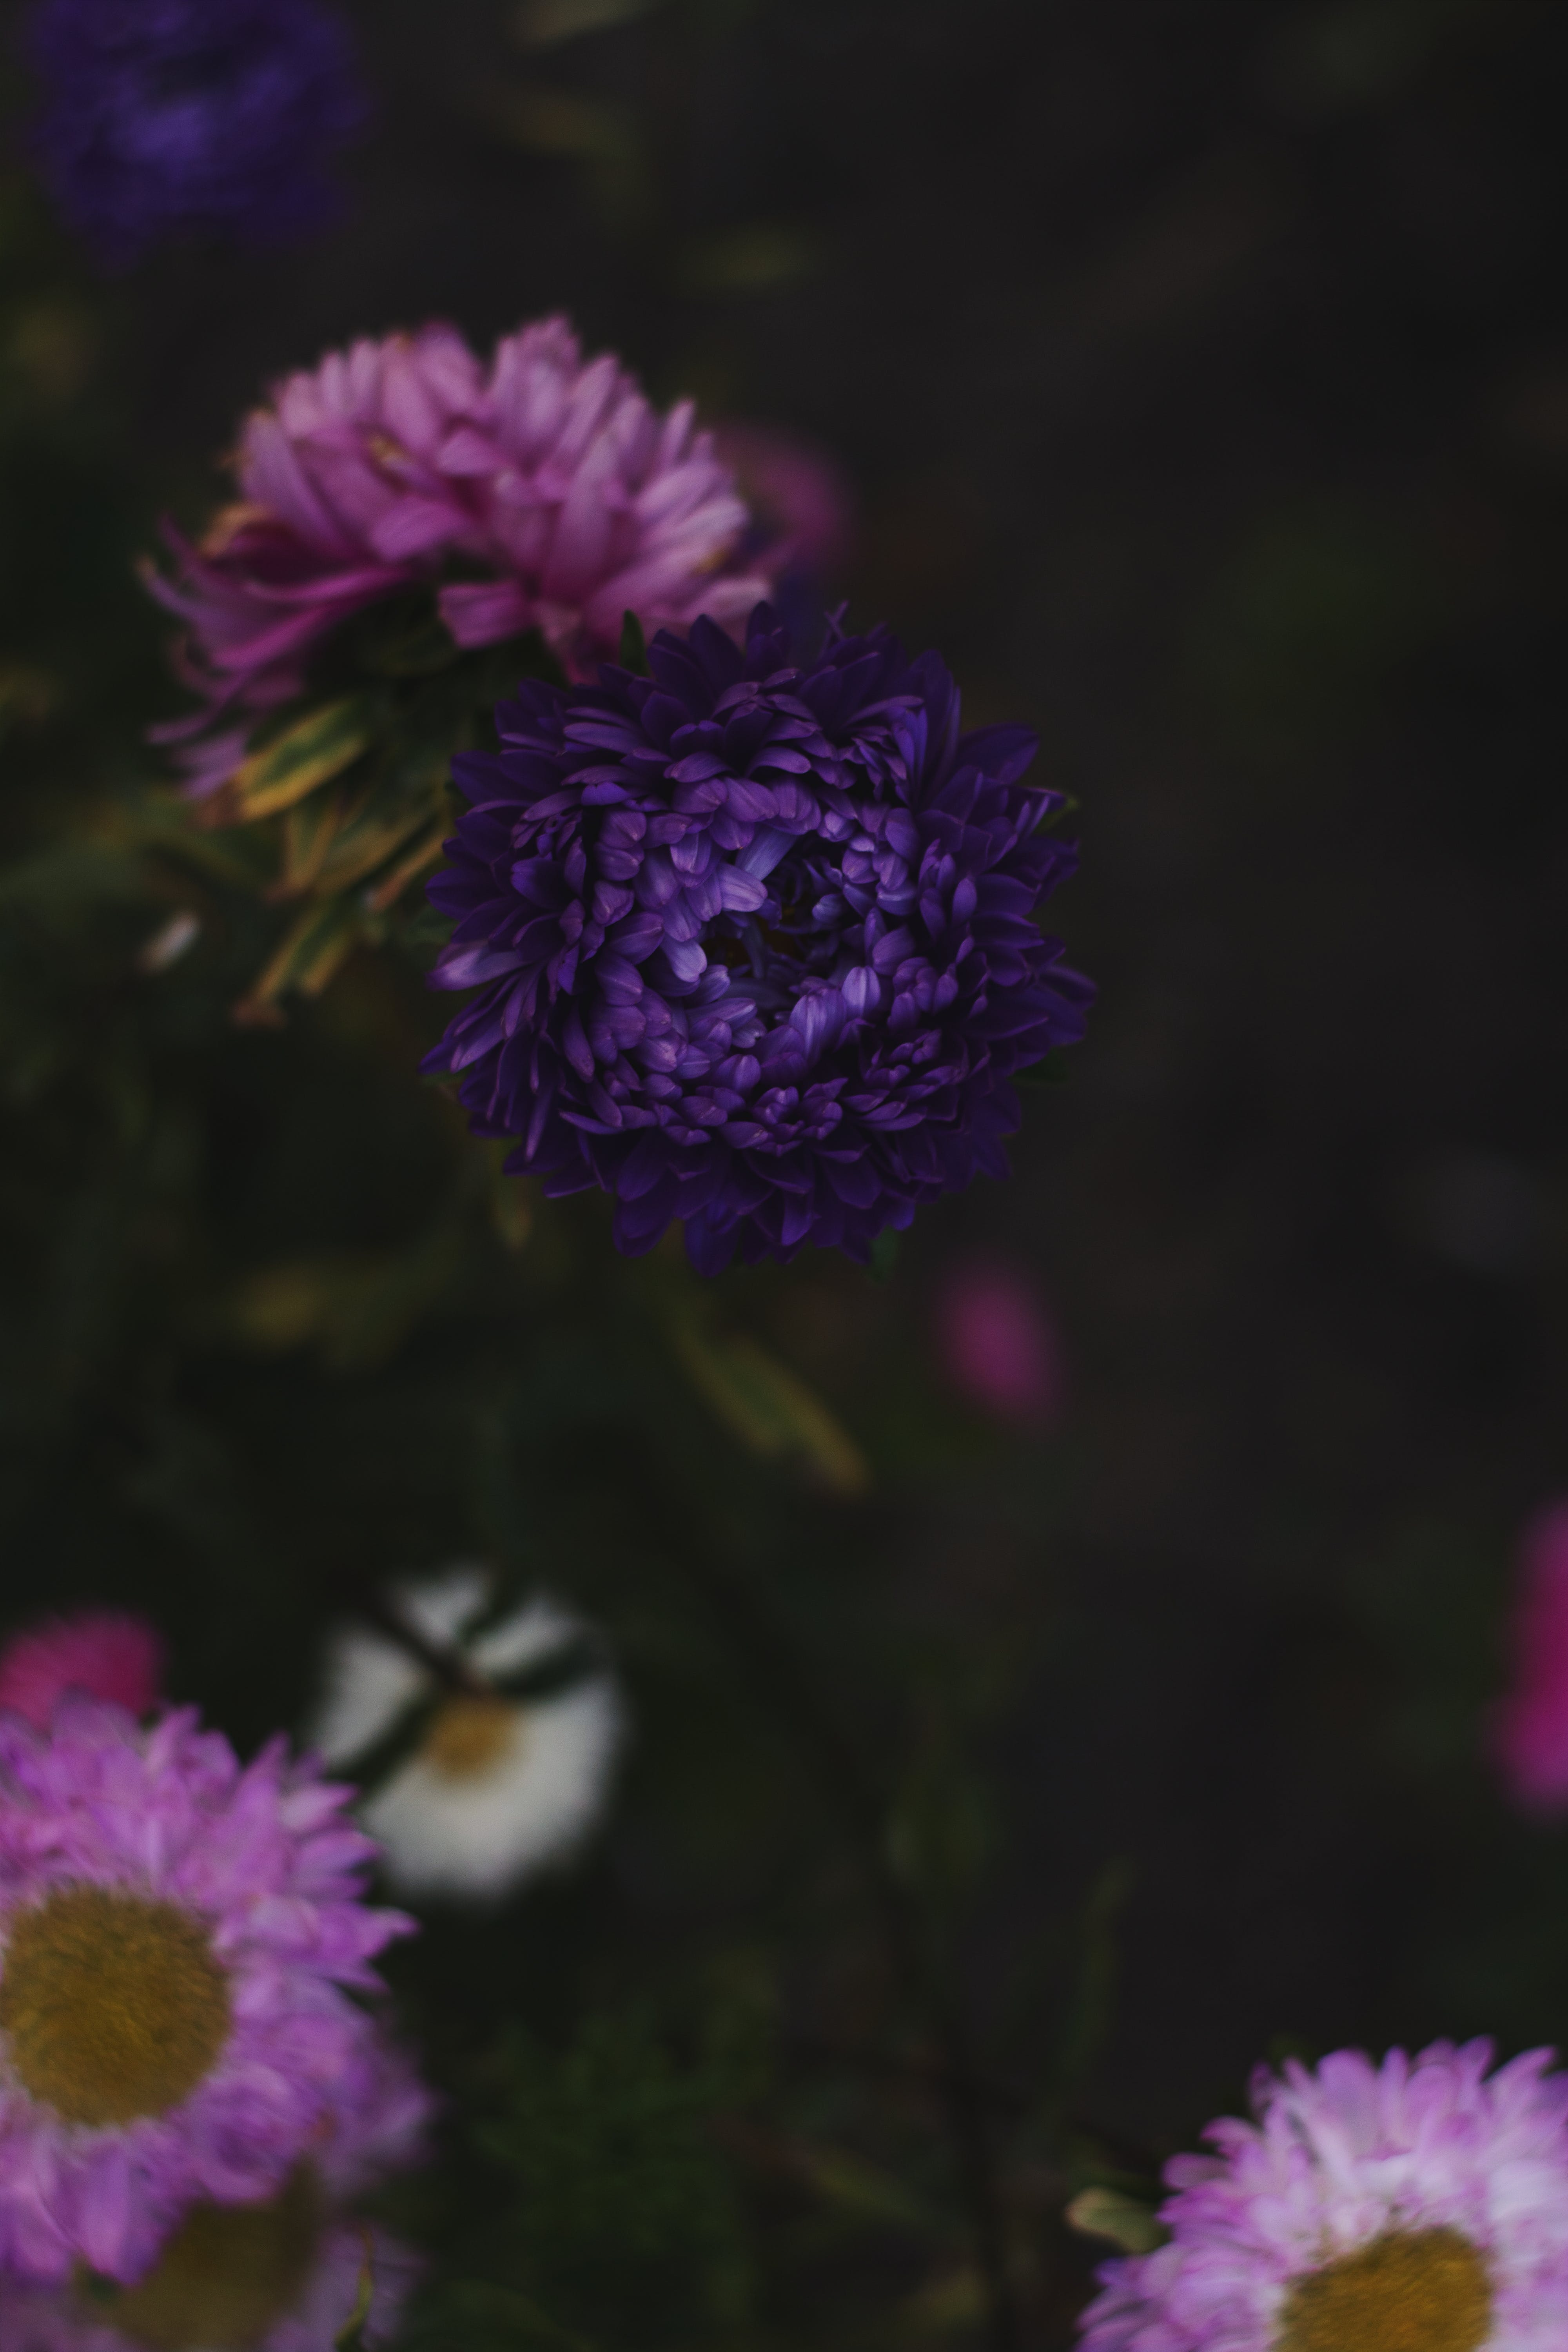 Gratis lagerfoto af asters, blomster, blomstrende, close-up